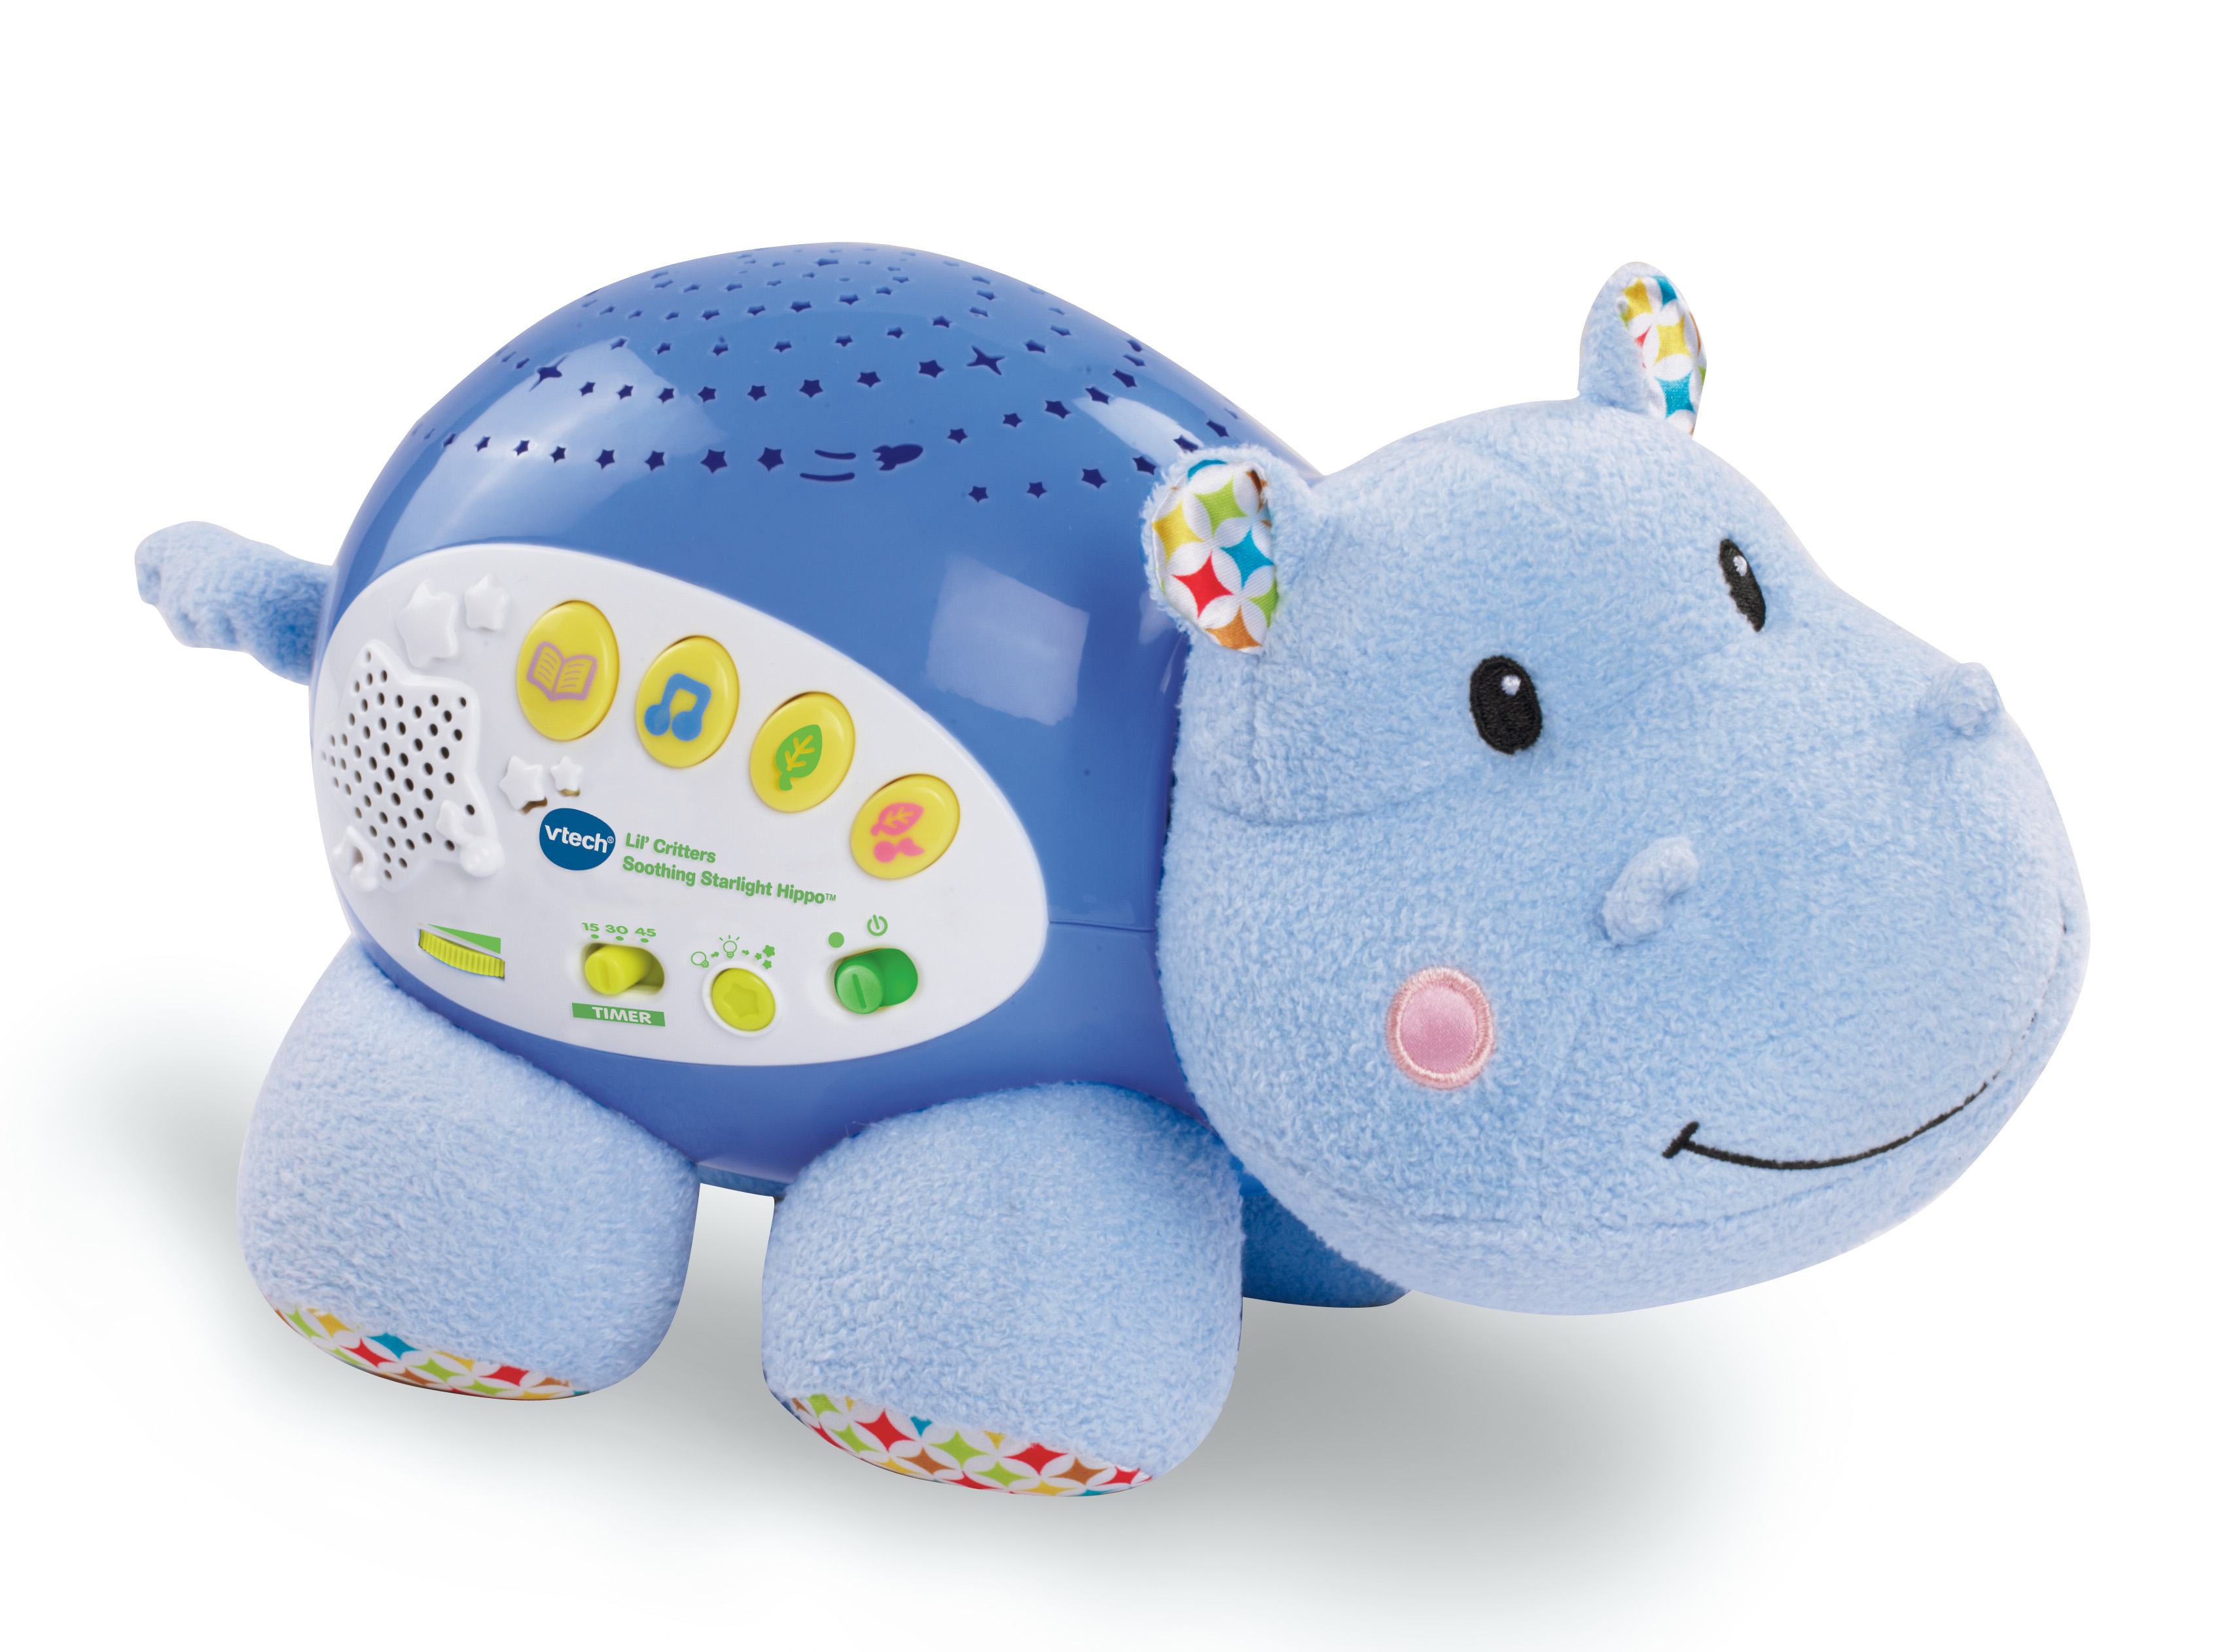 VTech® Lil\' Critters Soothing Starlight Hippo™ - Walmart.com